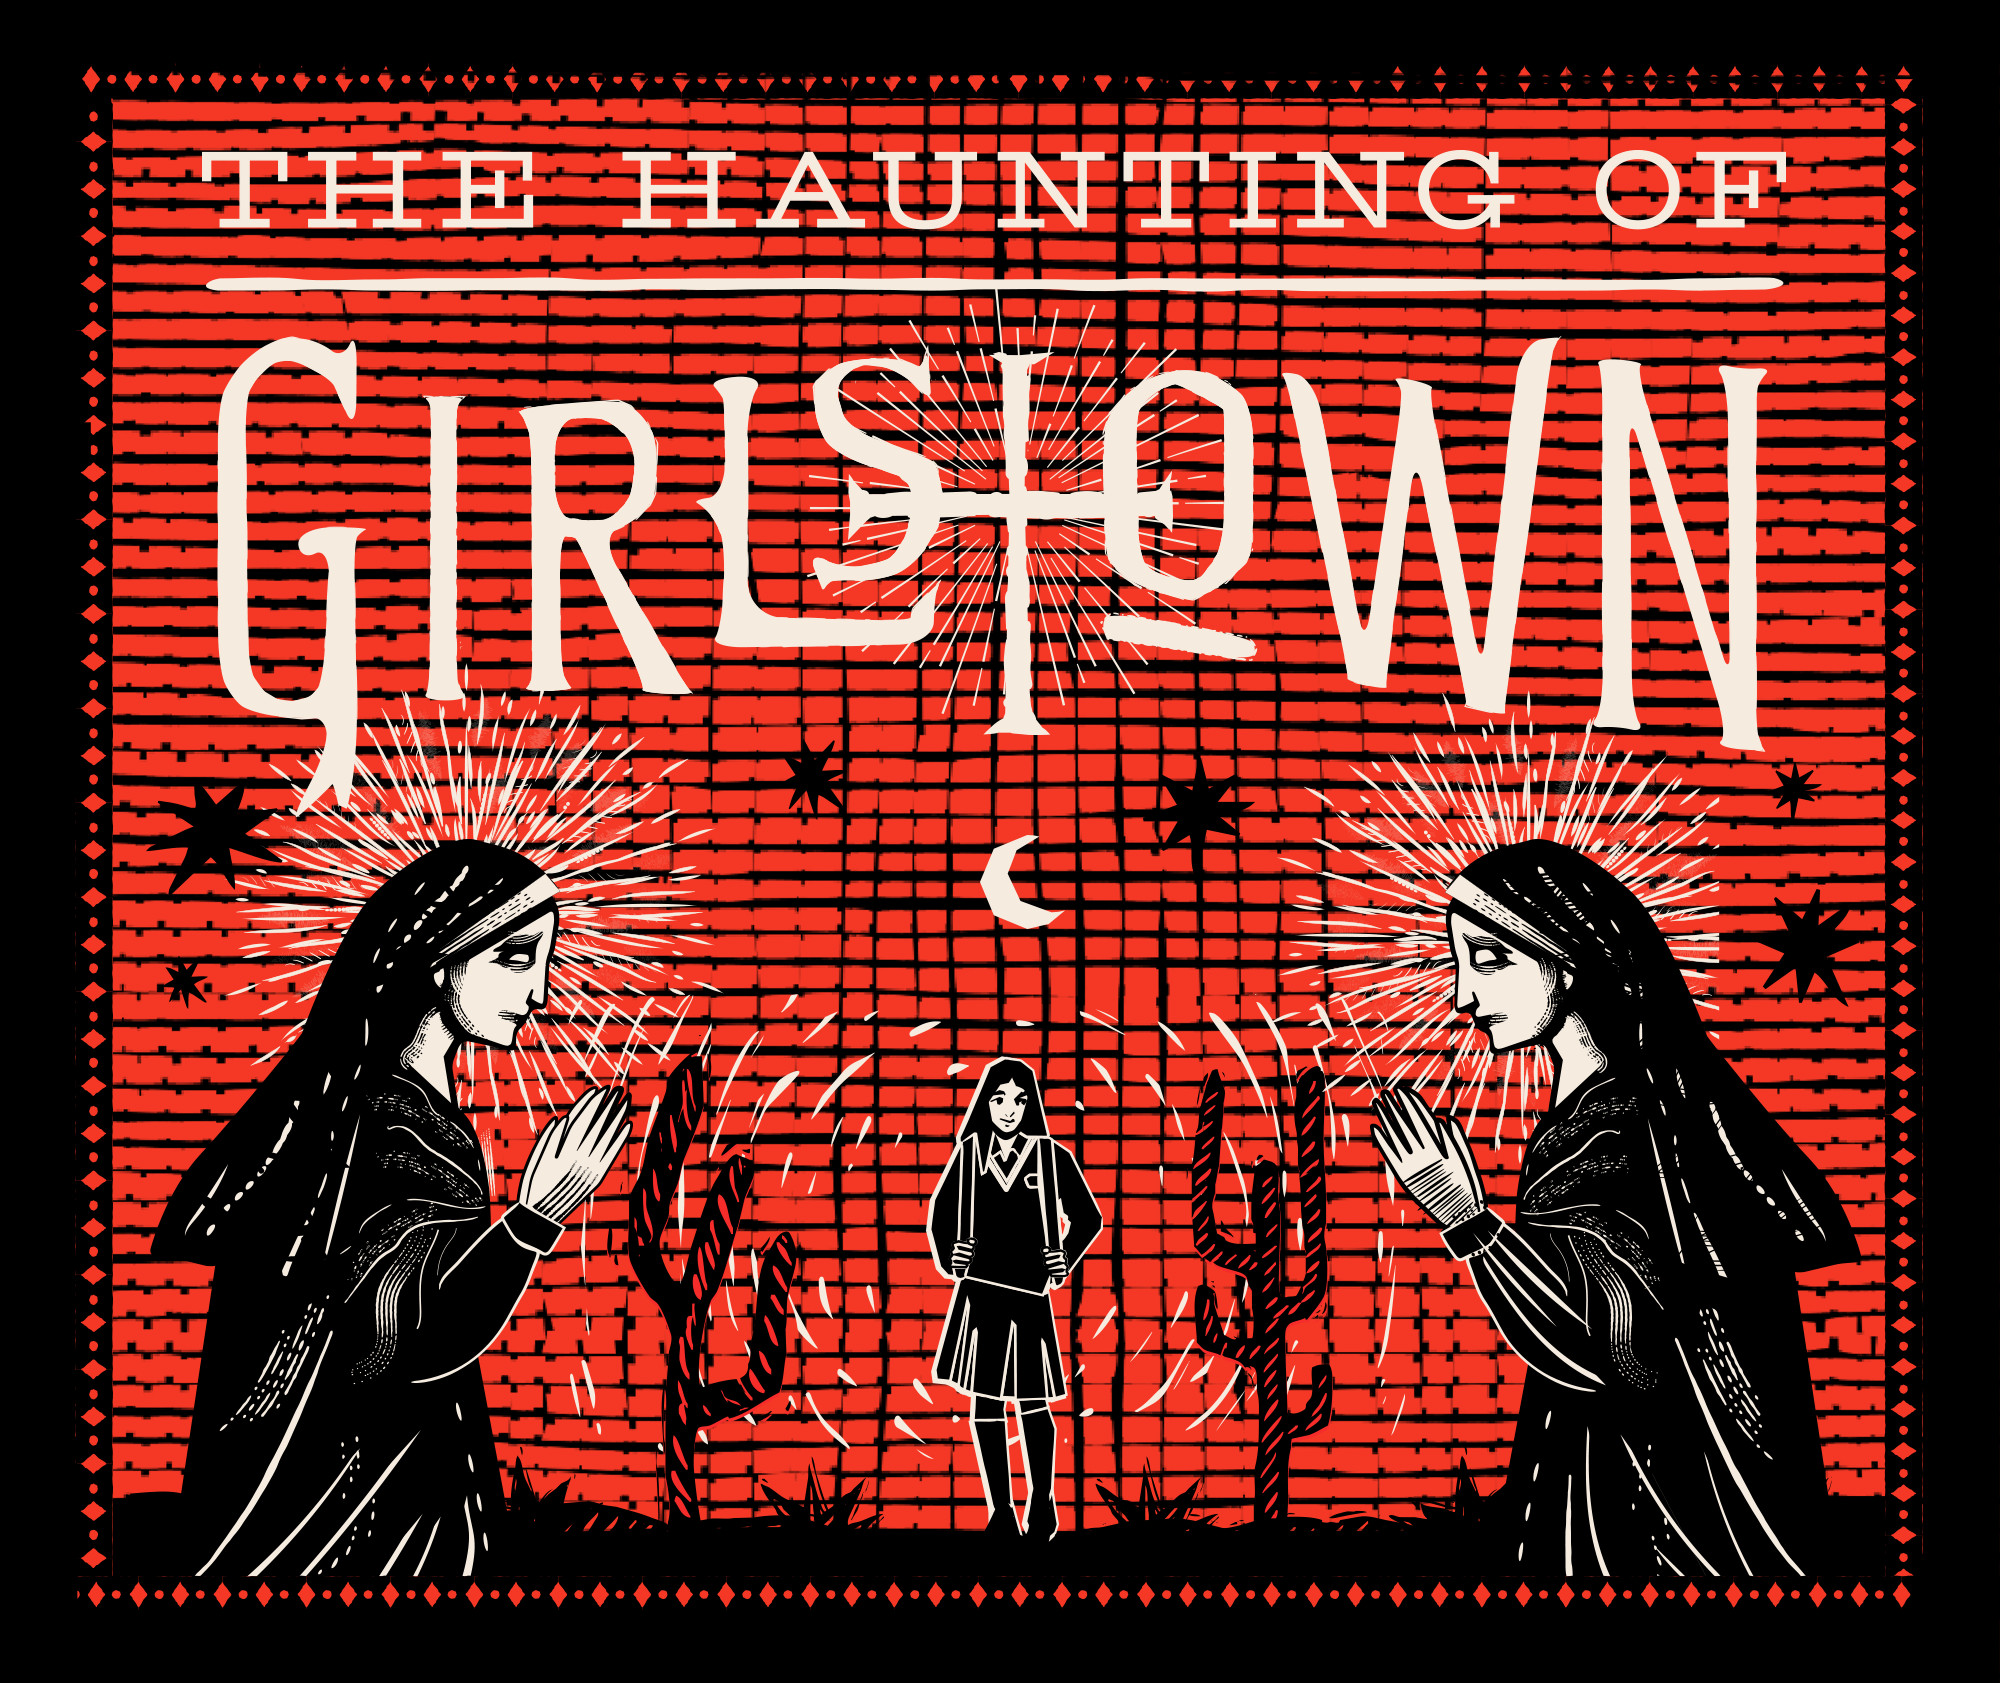 The Haunting of Girlstown. Illustration of nuns looking at a schoolgirl amid cactuses and stars.